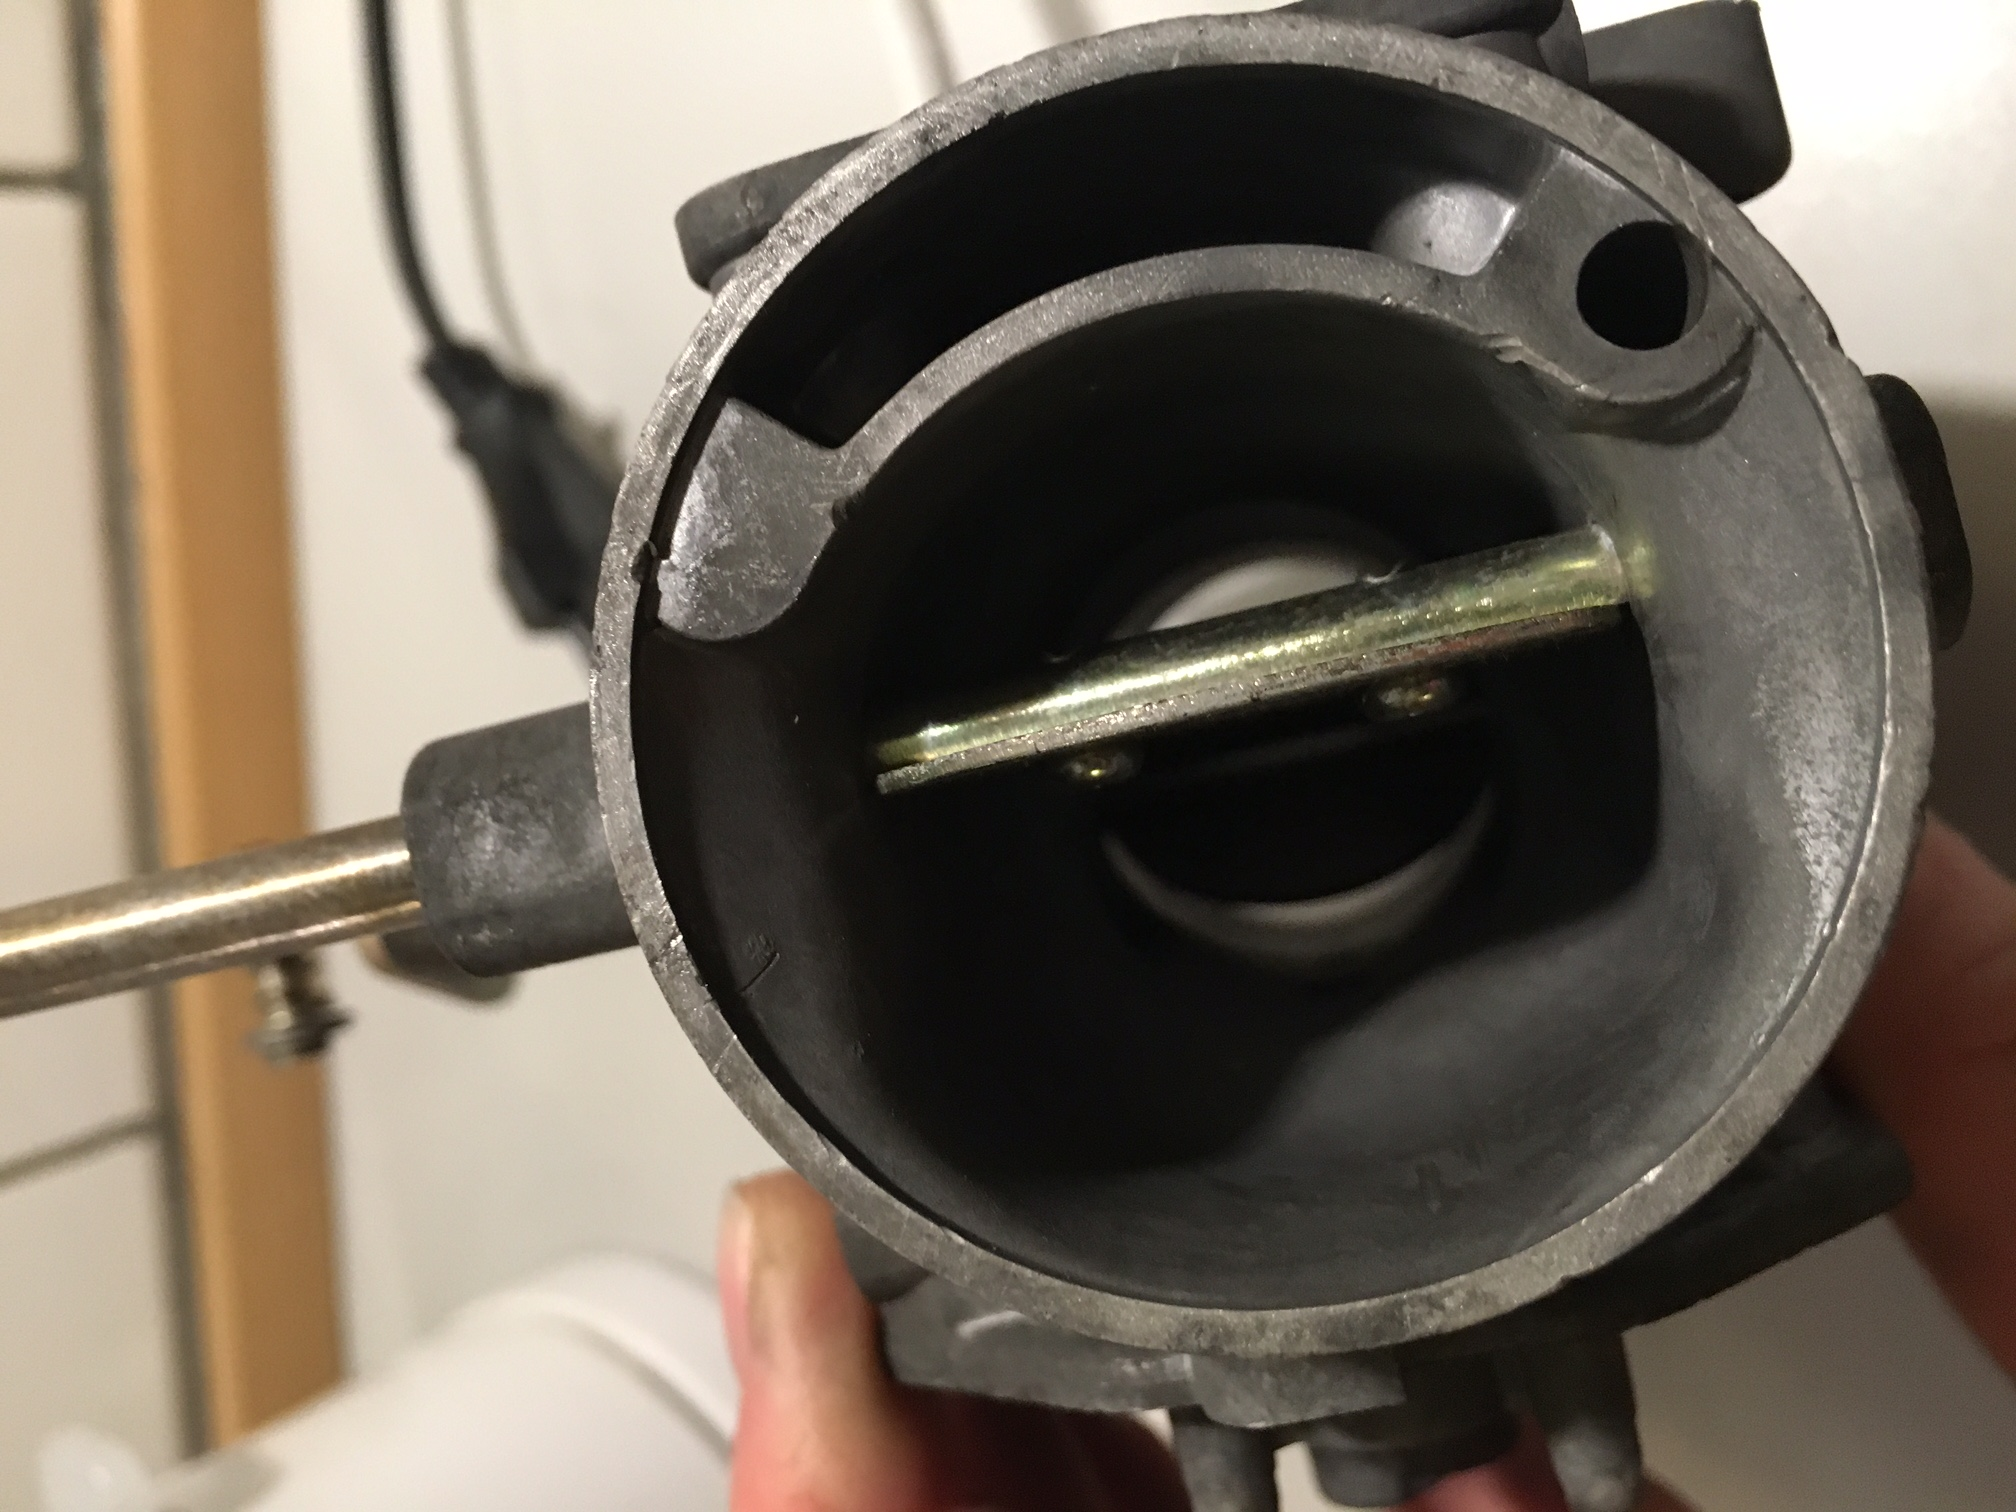 Carbs came out black after ultrasonic cleaning